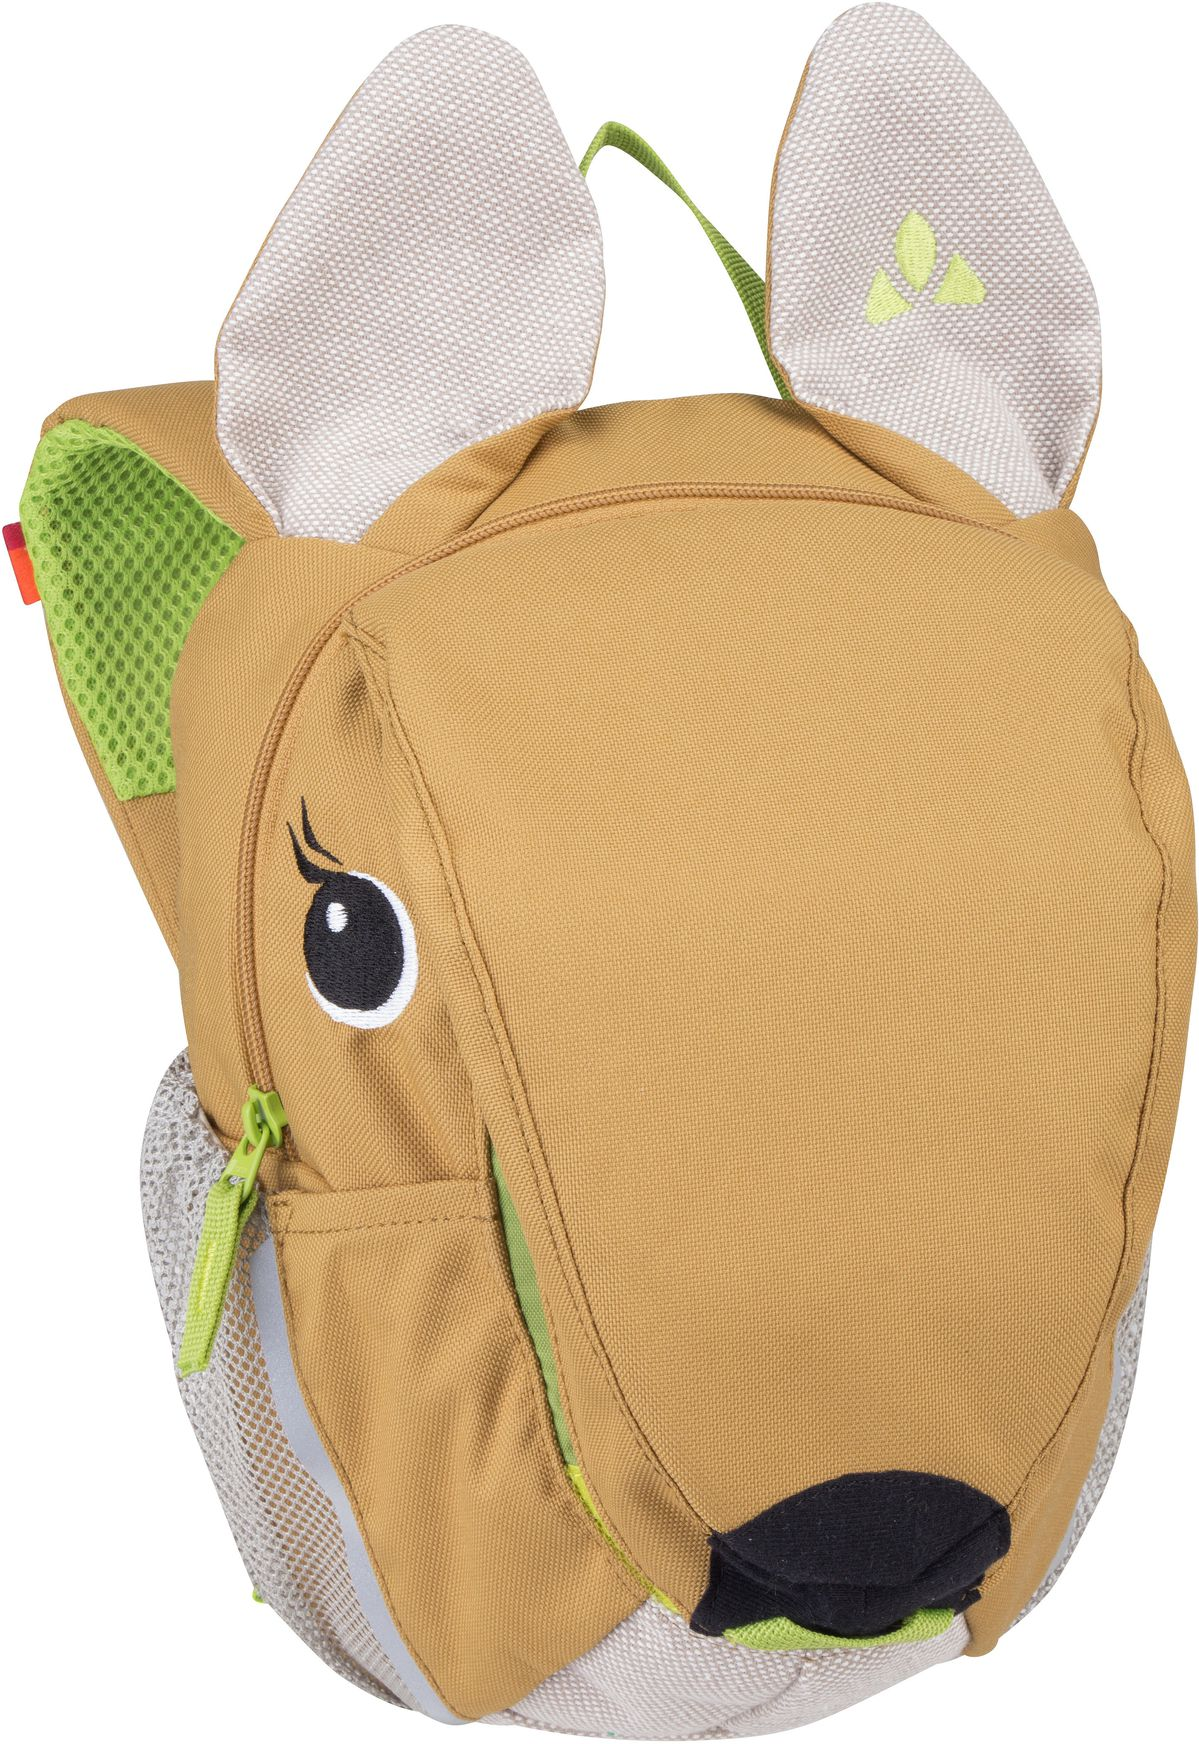 Rucksack / Daypack Easy-Peasy Backpack Stupsi (6 Liter)